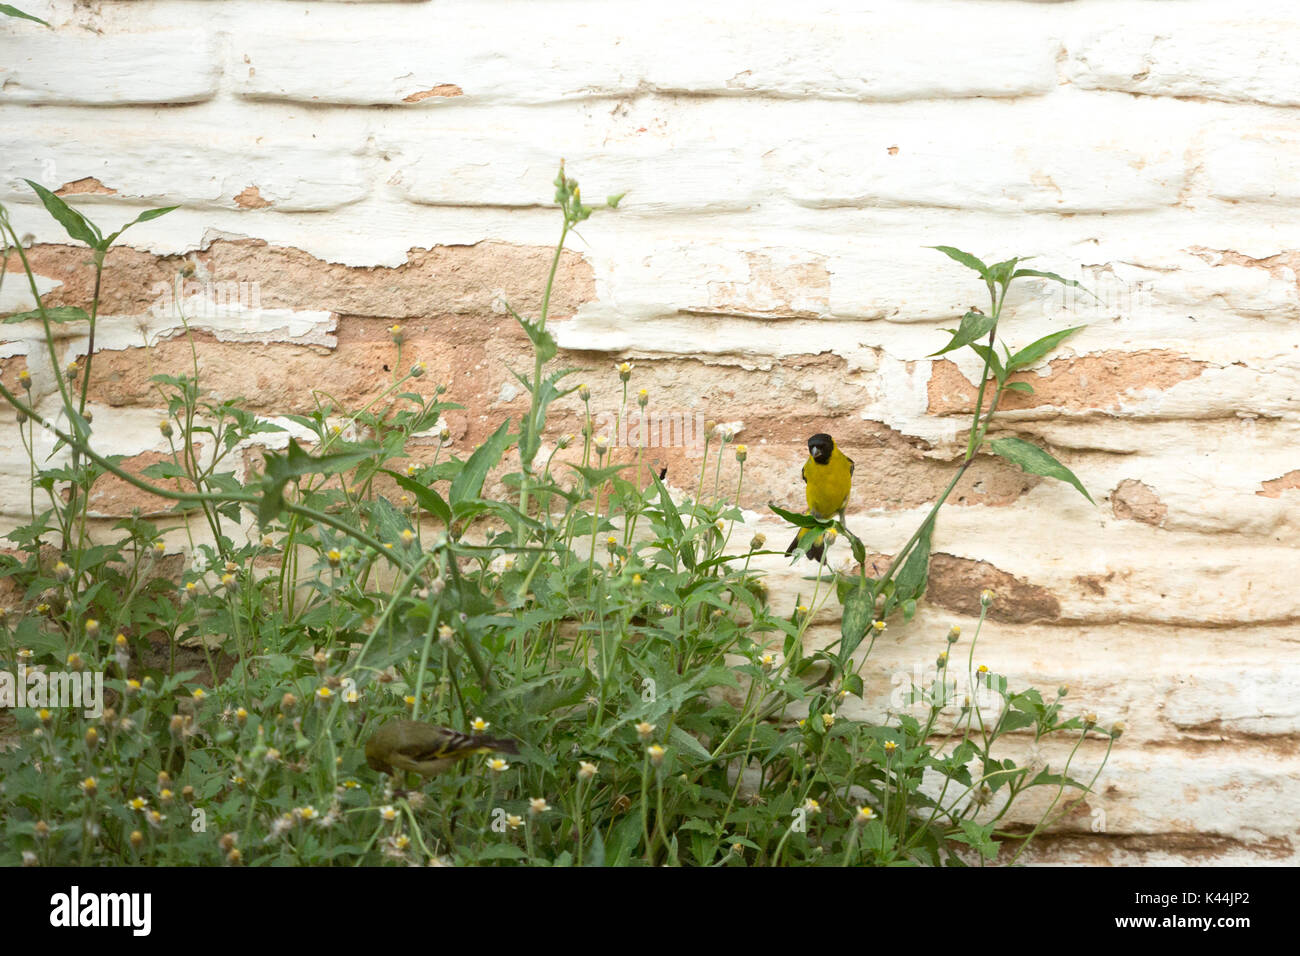 Asuncion, Paraguay. 4th Sep, 2017. A warm  day in Asuncion with temperatures high around 38°C as a pair of Hooded Siskin (Spinus magellanicus) passerine birds feed on wild flowers during the last hour of a hot windy afternoon. Female bird on the foreground and male bird with a black head is seen on the background. Credit: Andre M. Chang/ARDUOPRESS/Alamy Live News - Stock Image